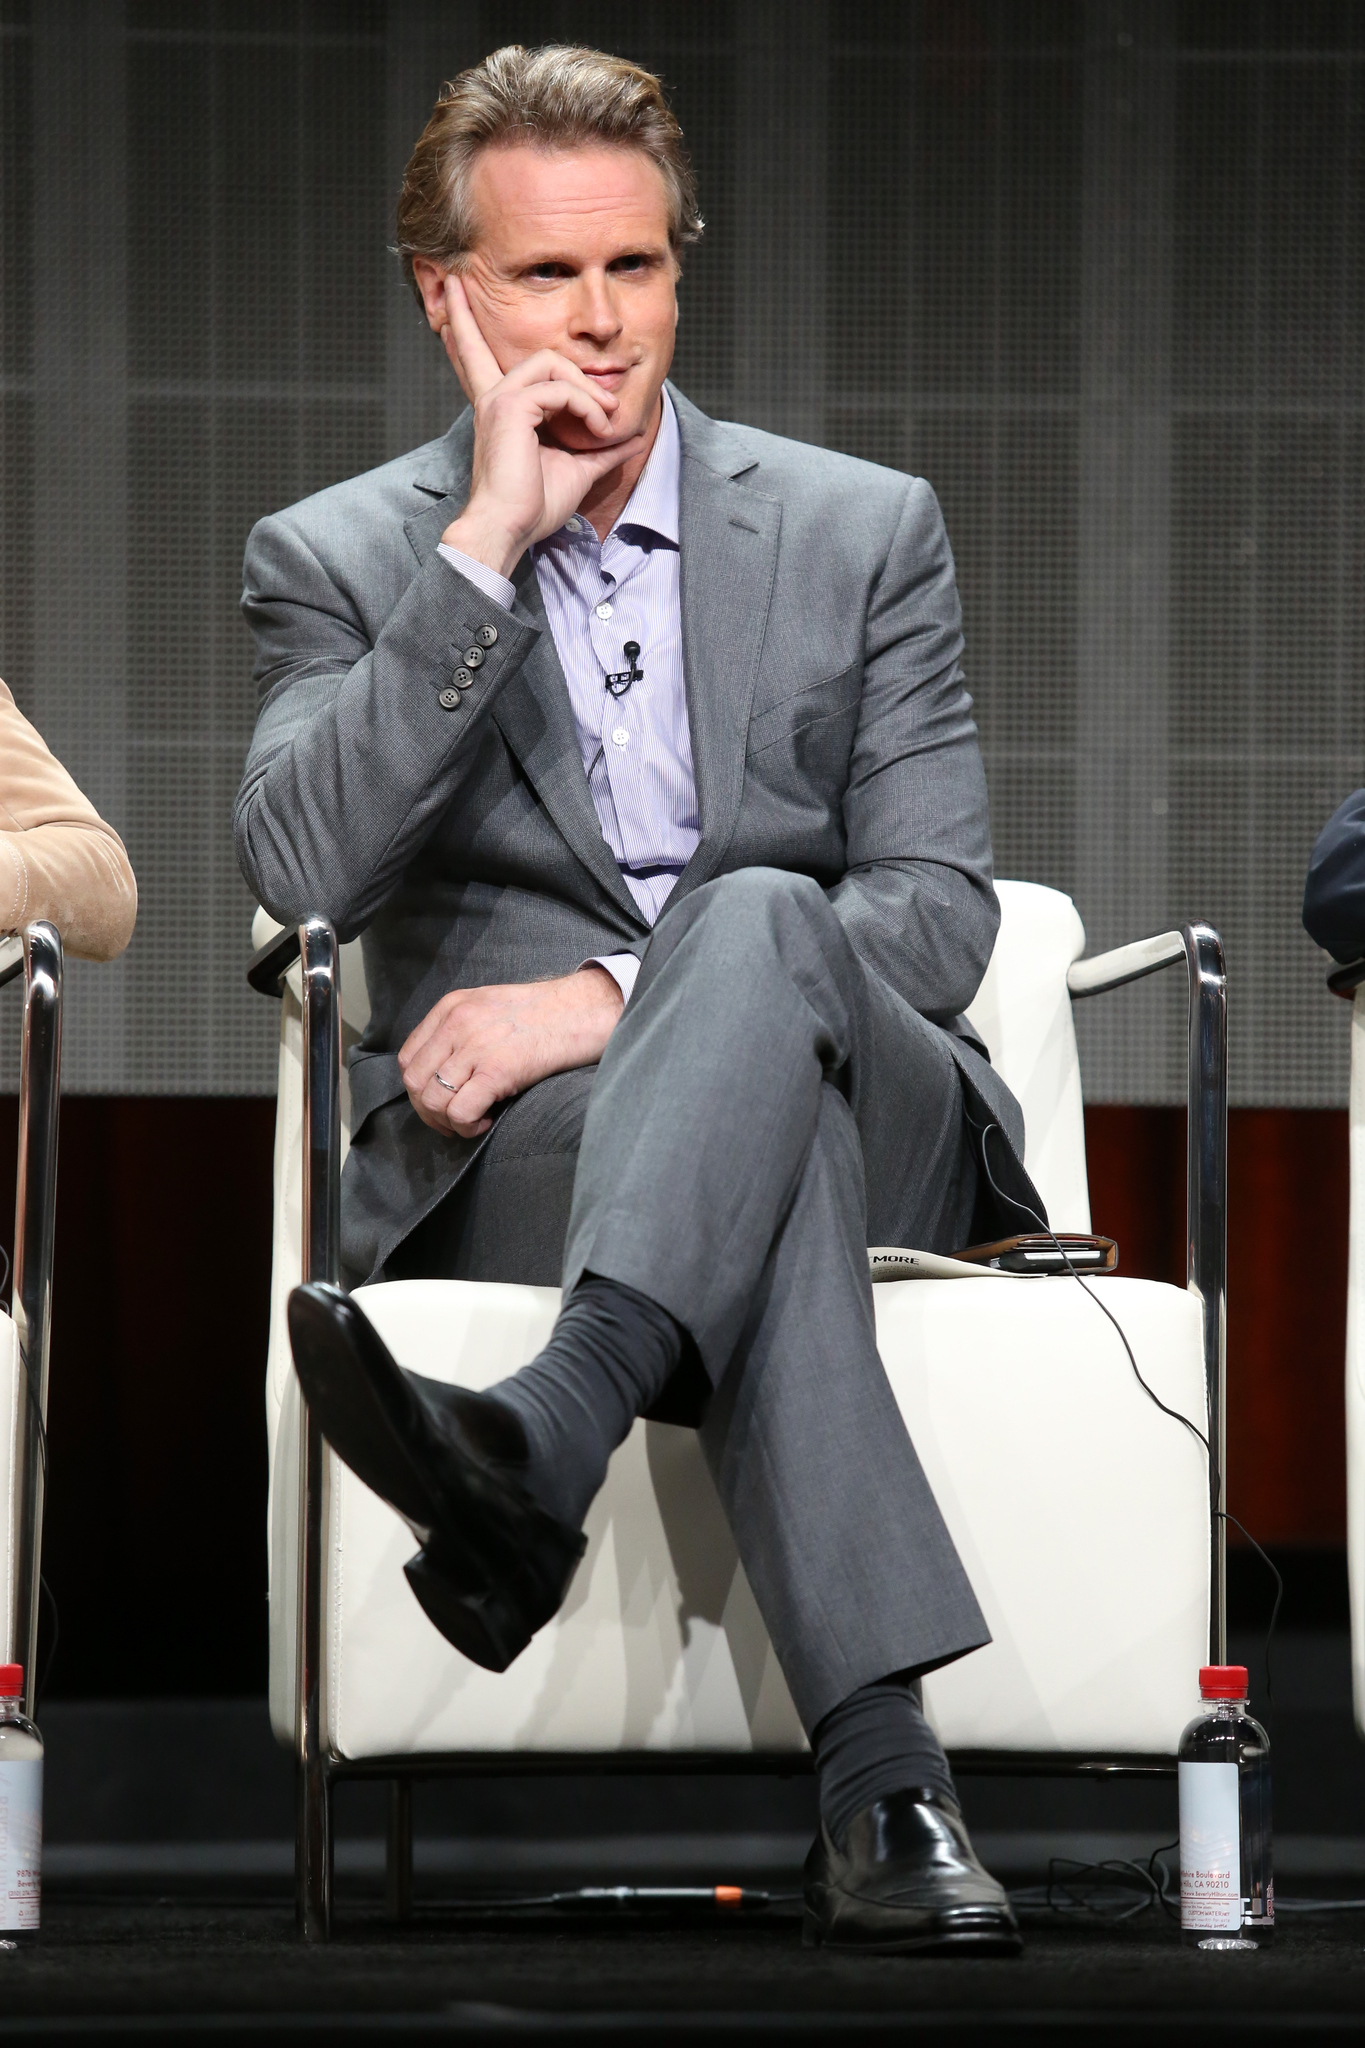 Cary Elwes at an event for The Art of More (2015)